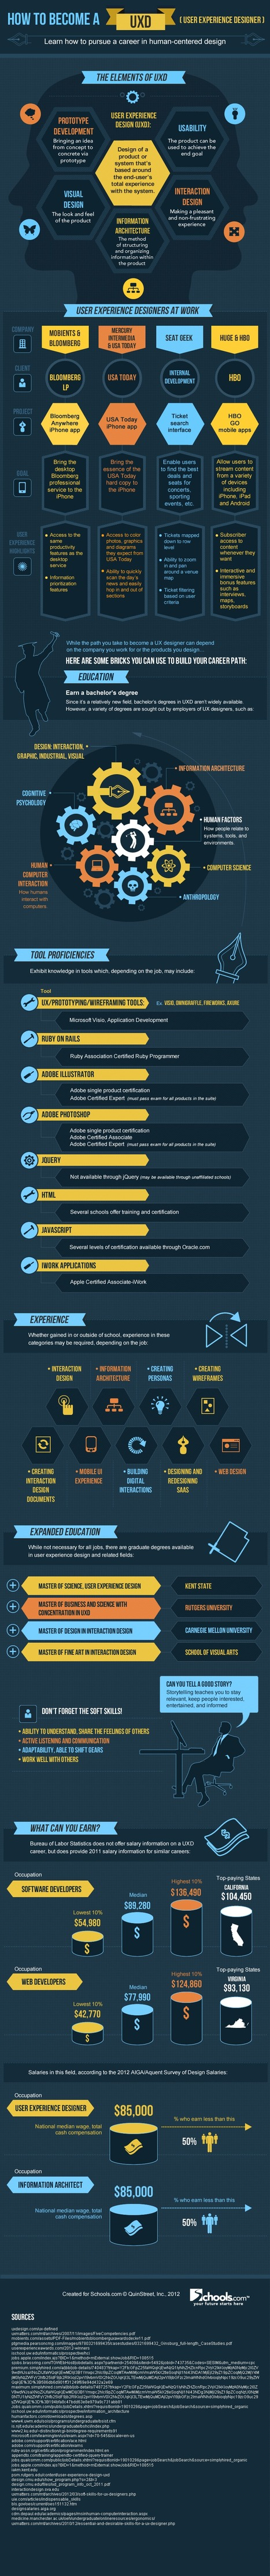 How to Become a UX Designer [Infographic] | Business 2 Community | UX Design News and Notes | Scoop.it